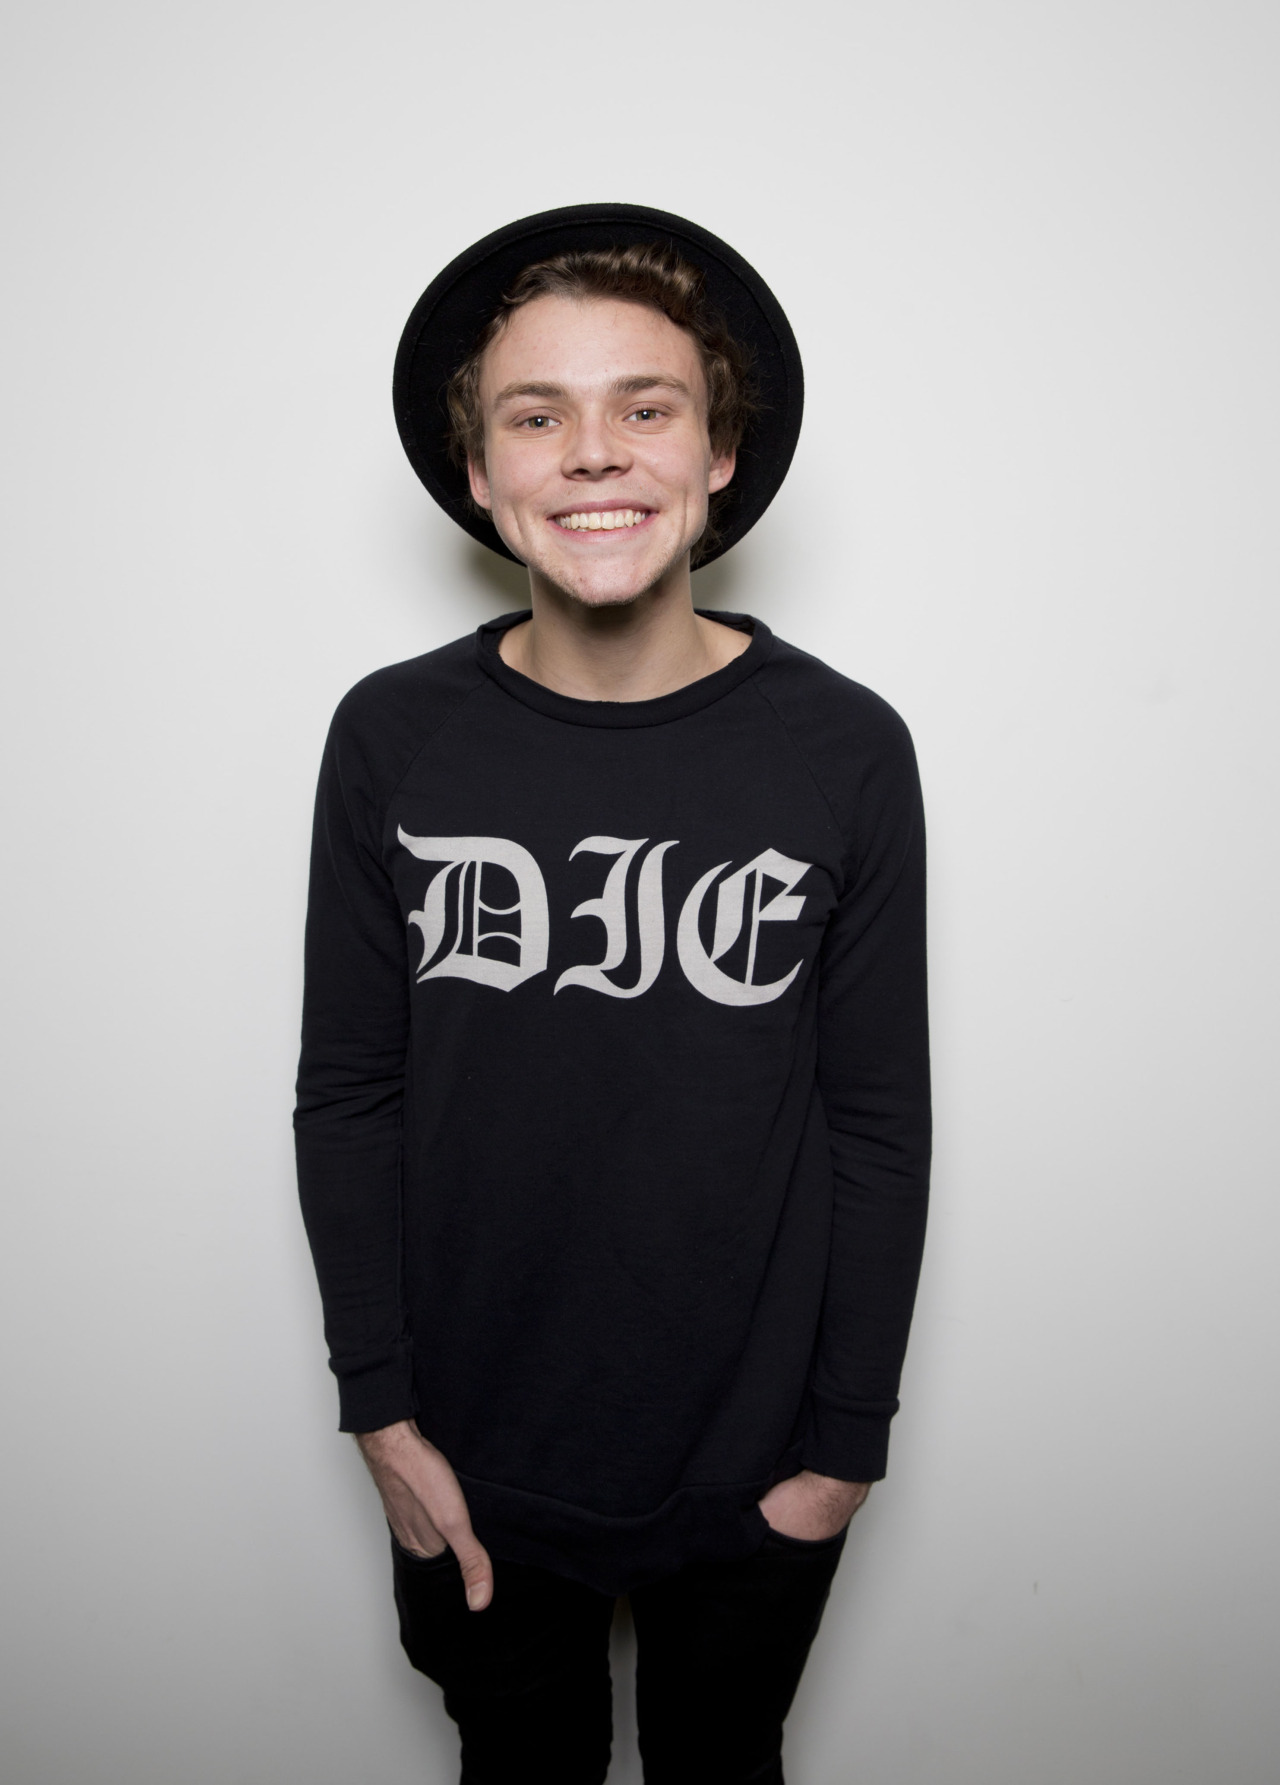 Ashton Irwin - Ashton Irwin Wallpaper (38979214) - Fanpop